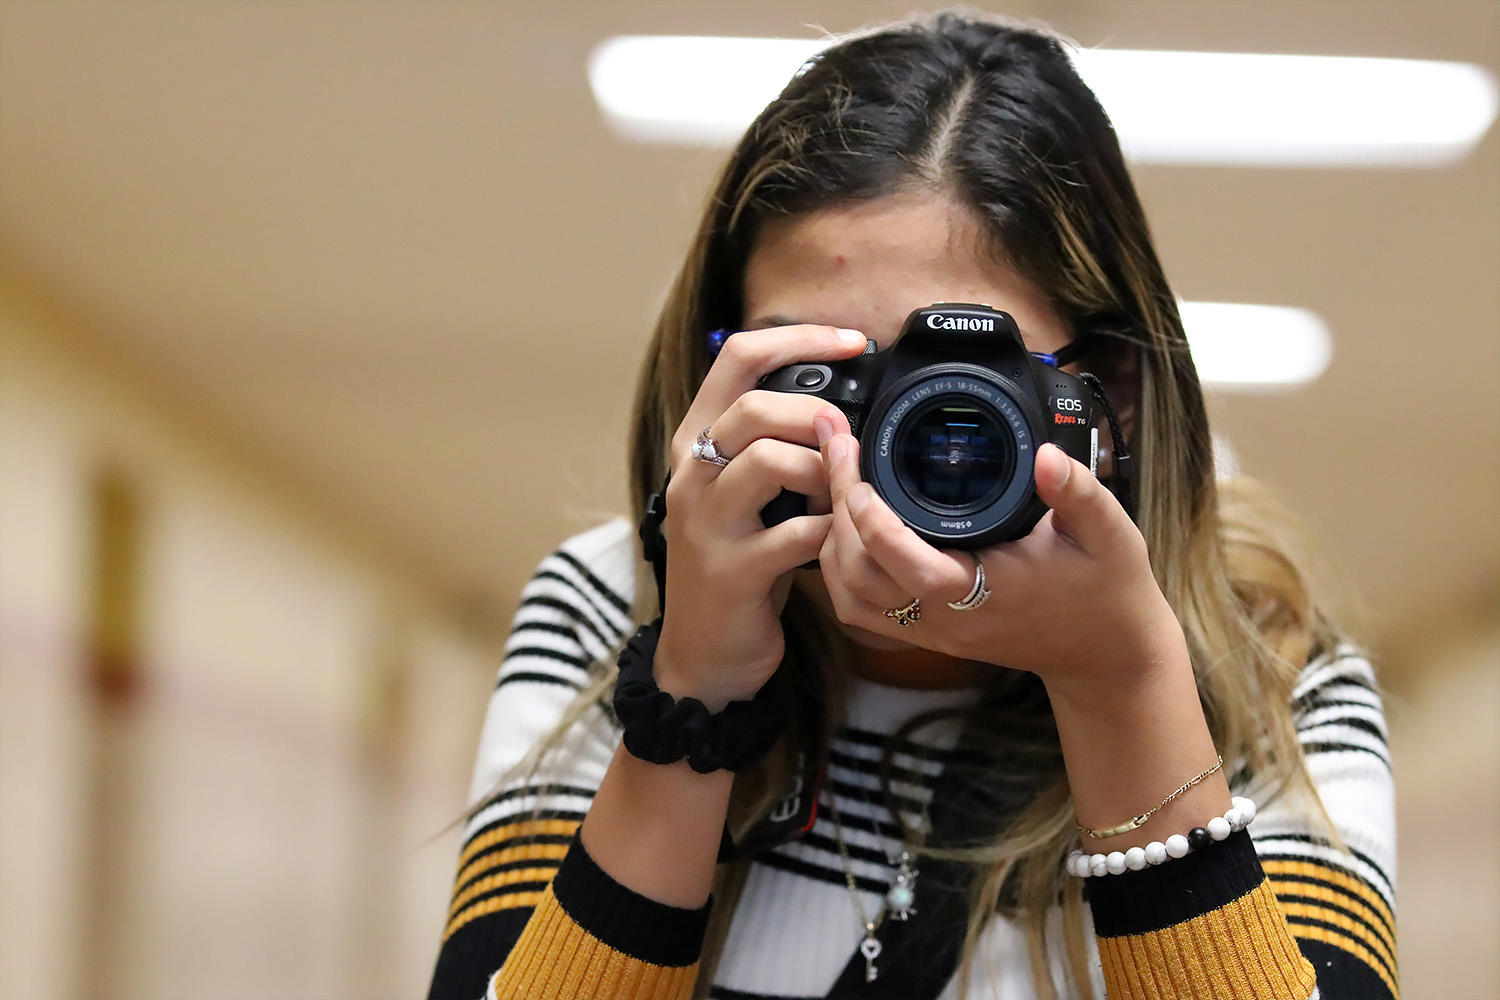 Jessica Pagan takes a photo during Photography class.